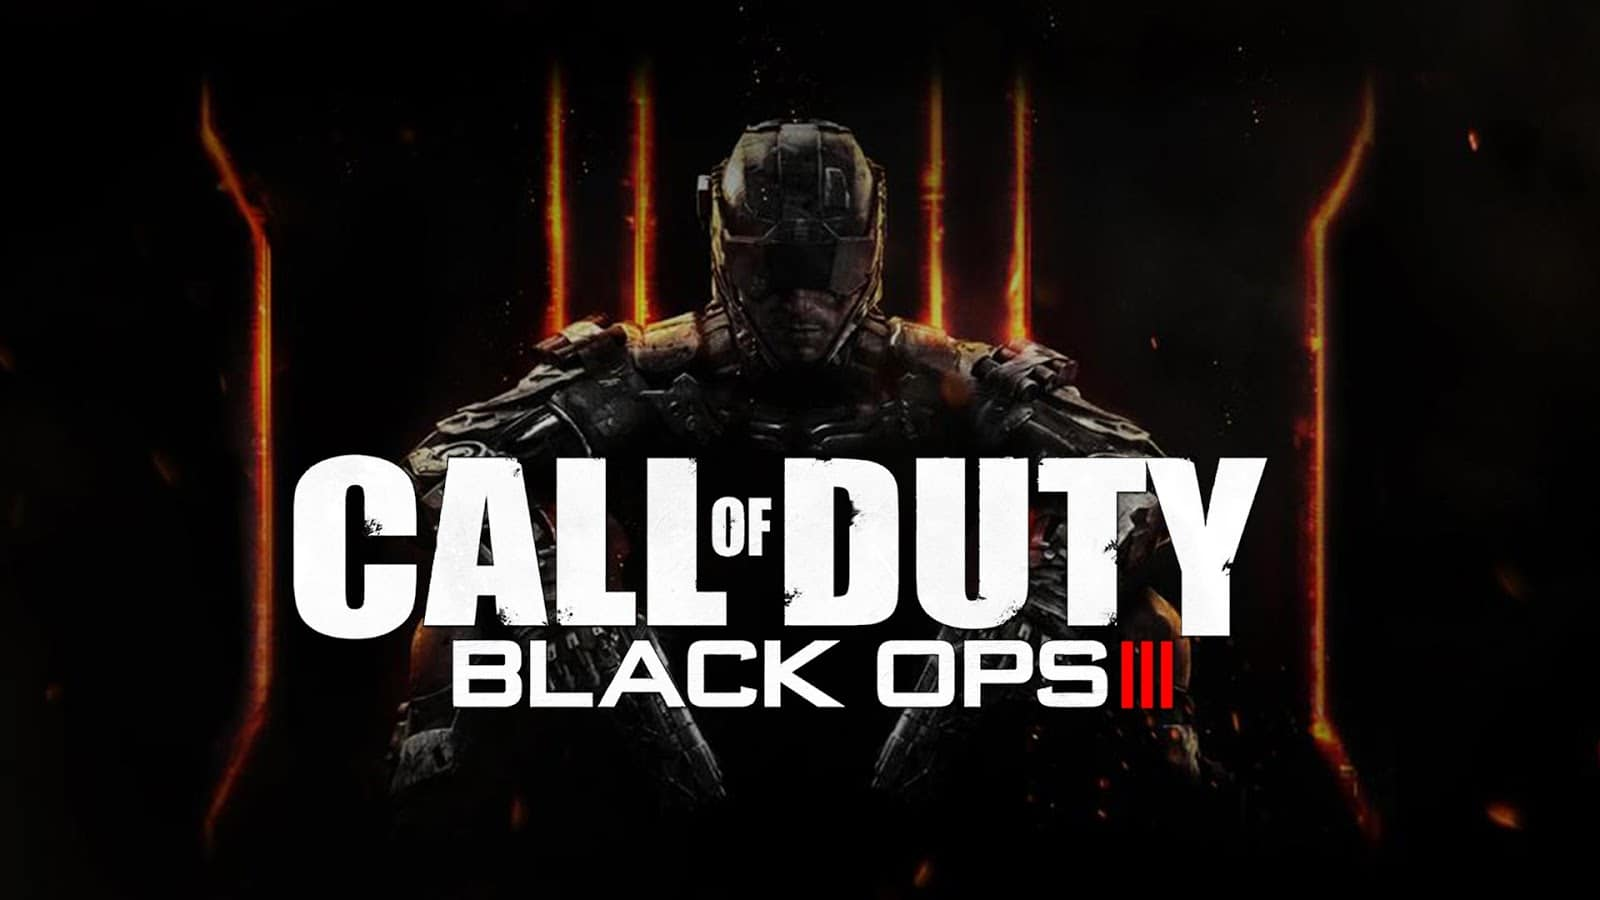 Best Selling PS4 Games - Call of Duty Black Ops III